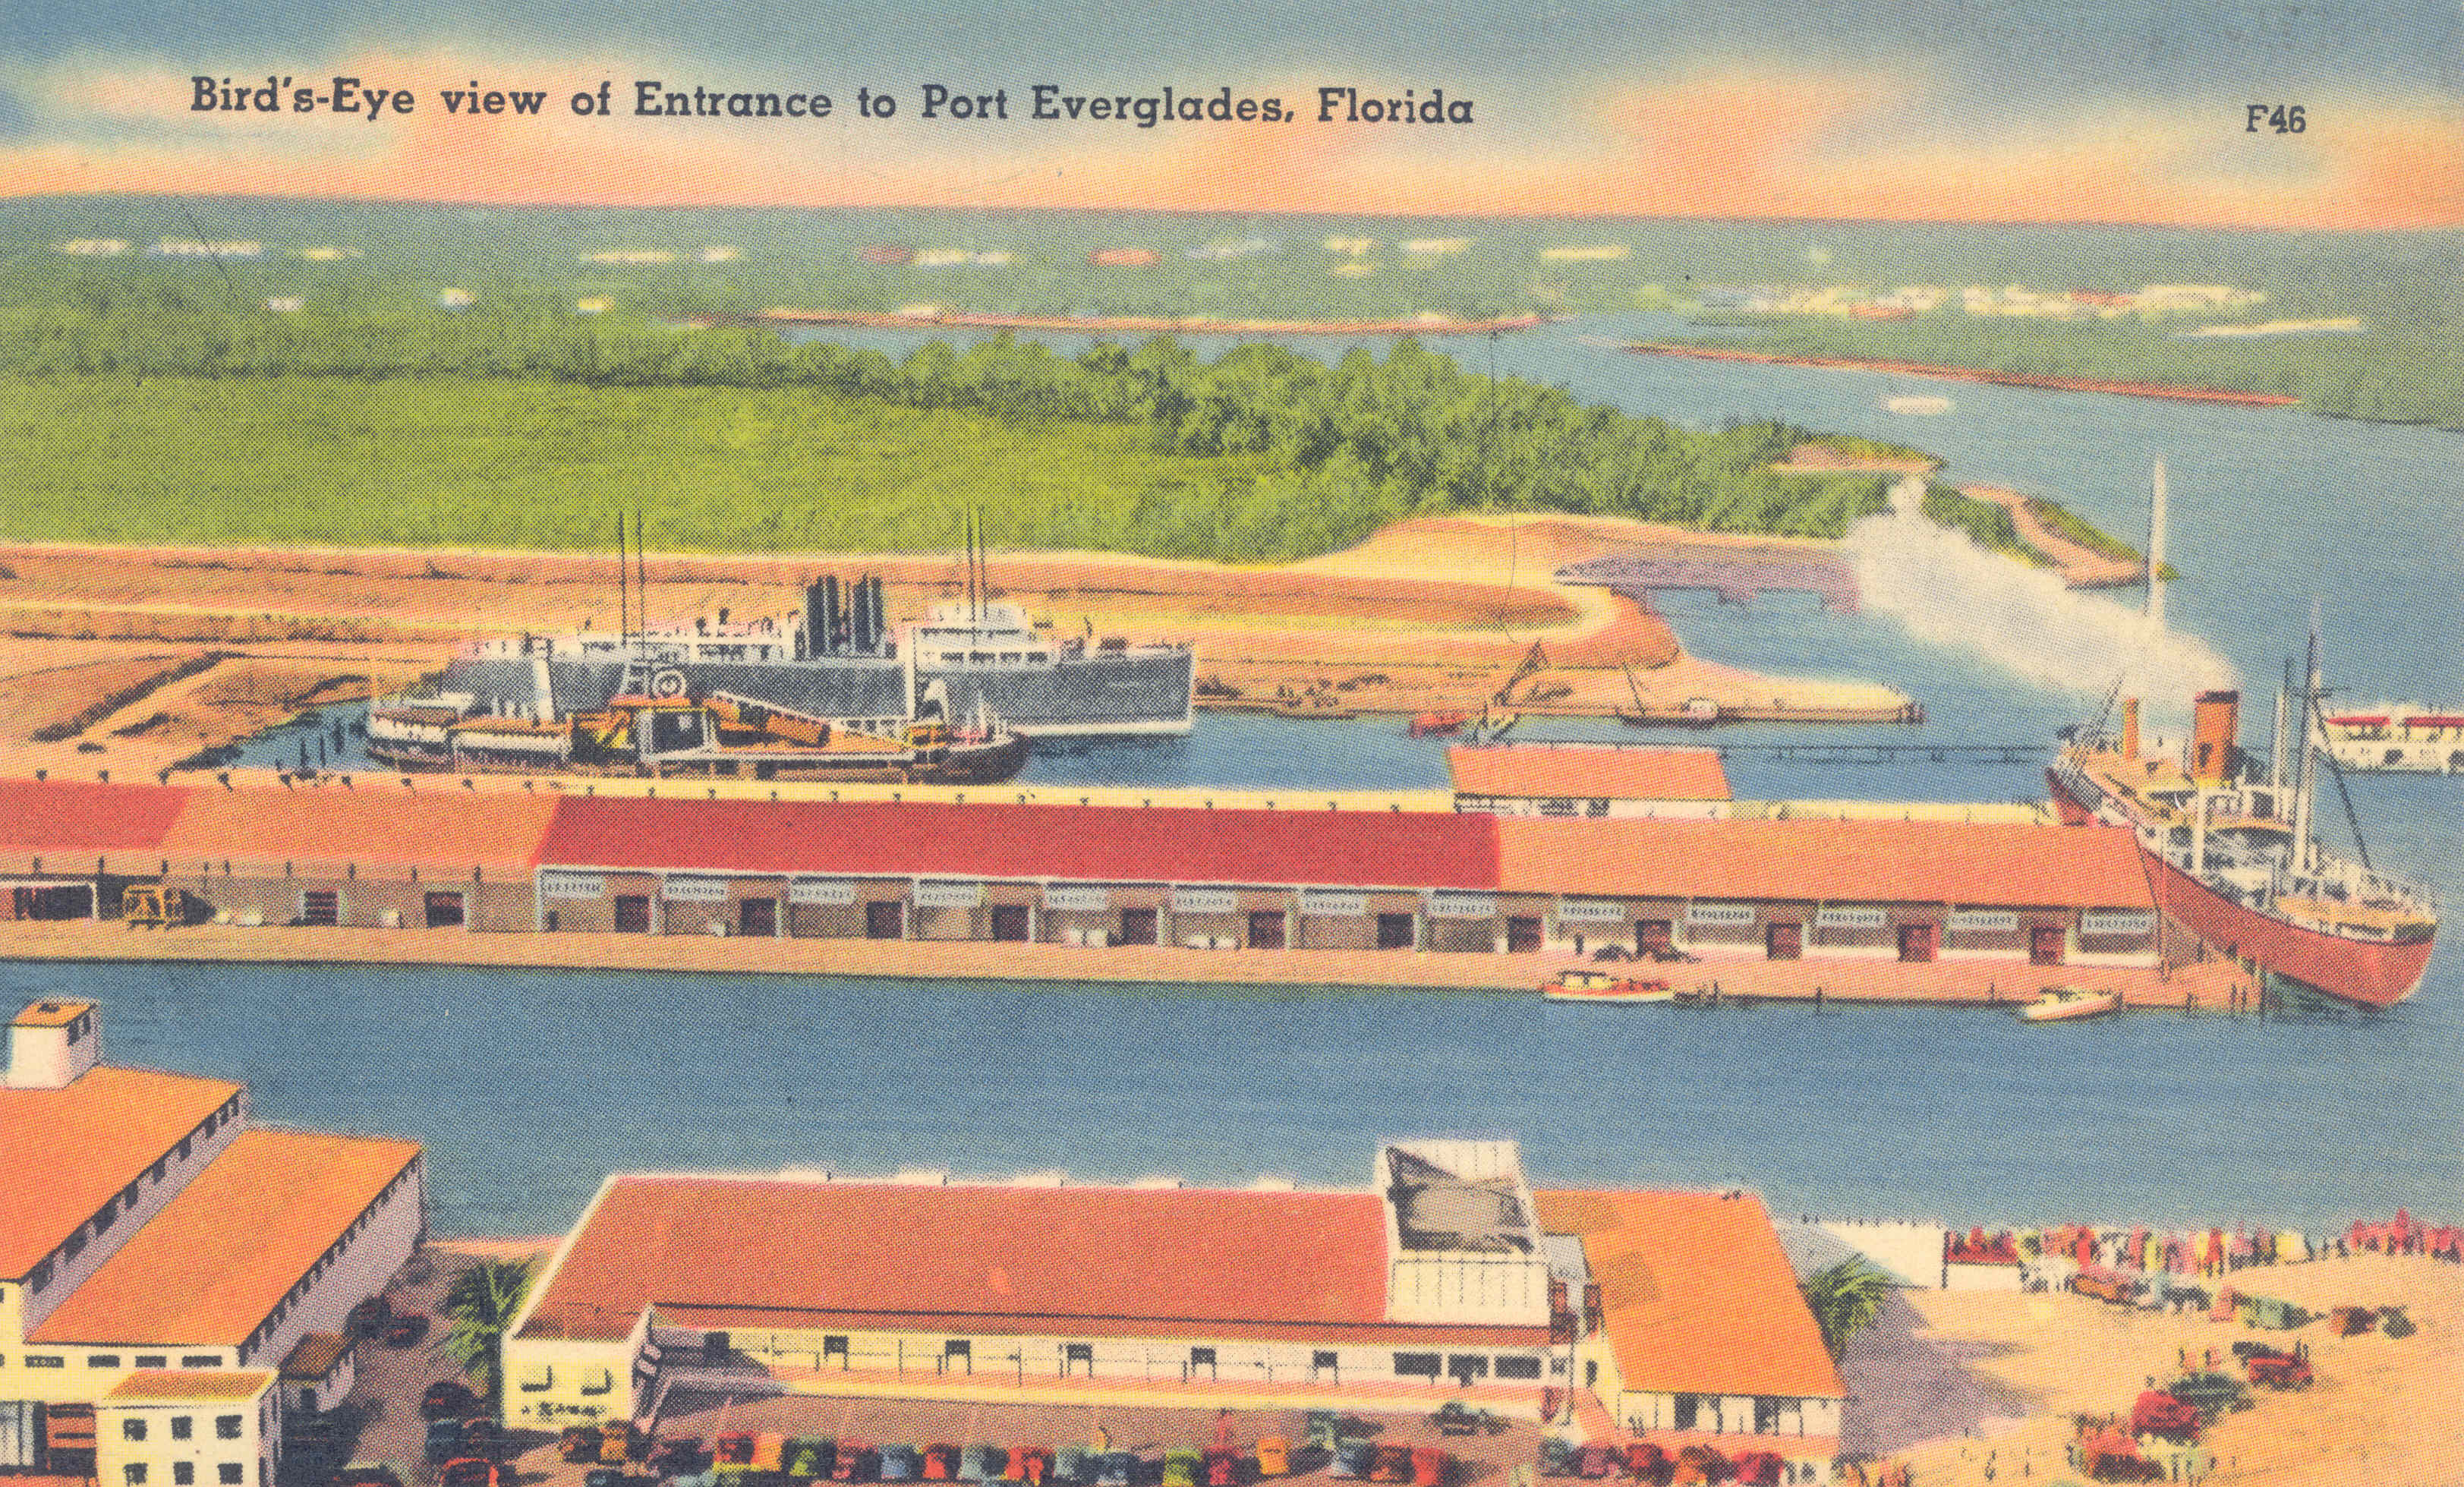 Bird's-Eye View of Entrance to Port Everglades